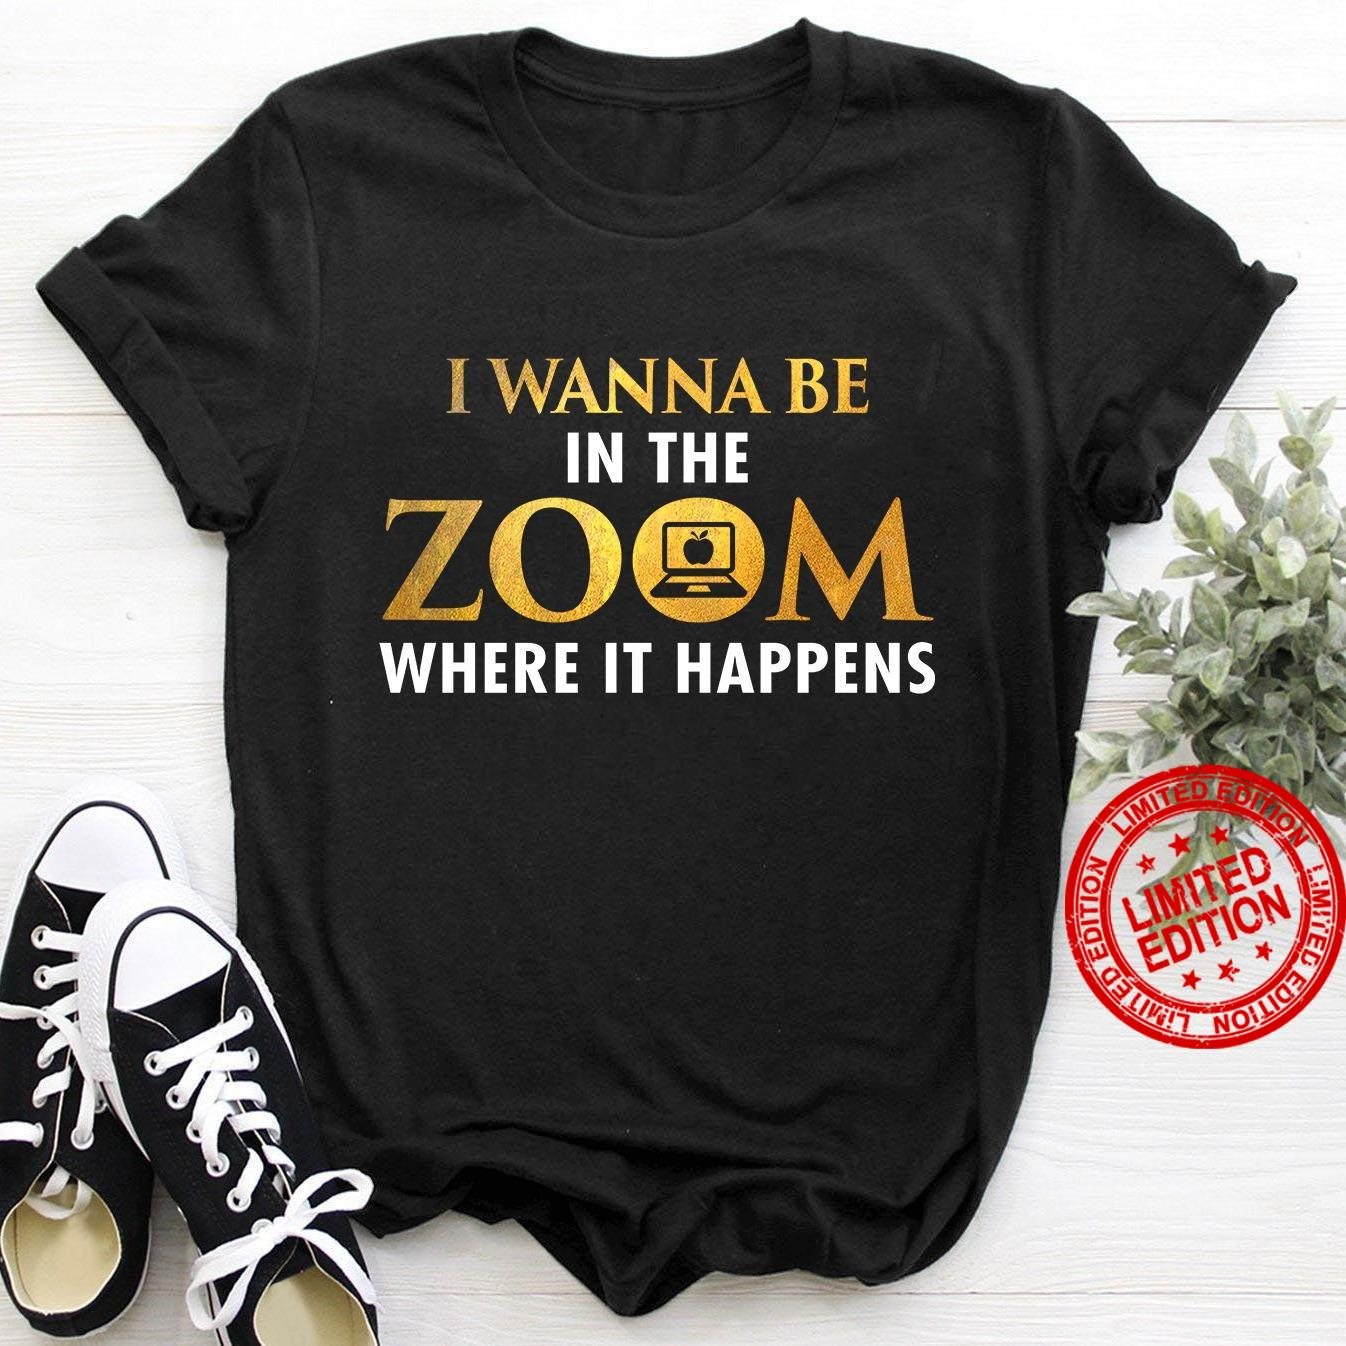 I Wanna Be In The Zoom Where It Happens Shirt